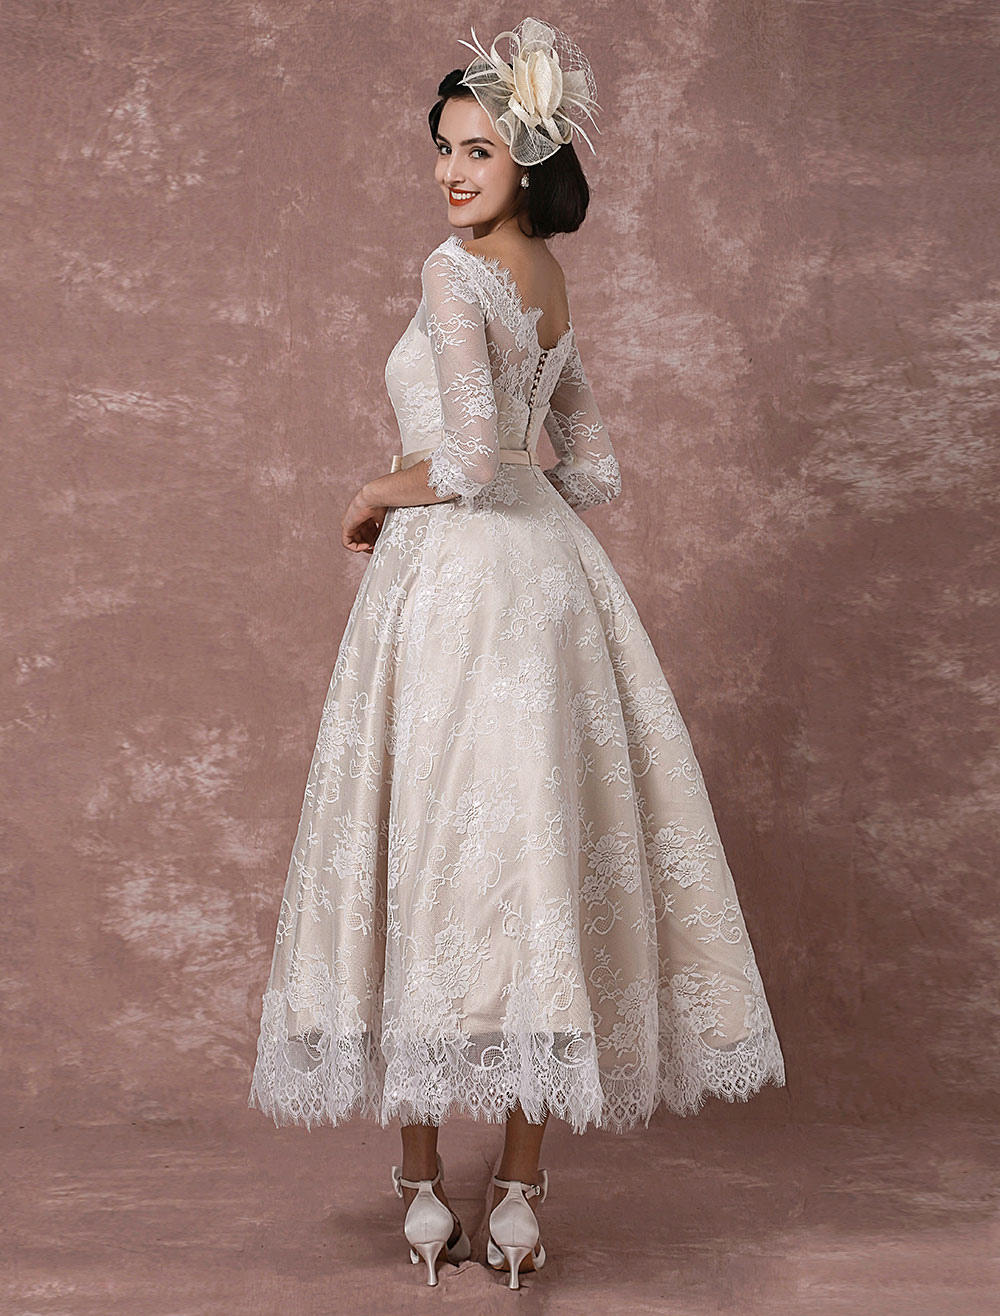 Lace wedding dress vintage bateau champagne half sleeves bridal gown lace wedding dress vintage bateau champagne half sleeves bridal gown a line backless tea length sash reception bridal dress milanoo milanoo junglespirit Images